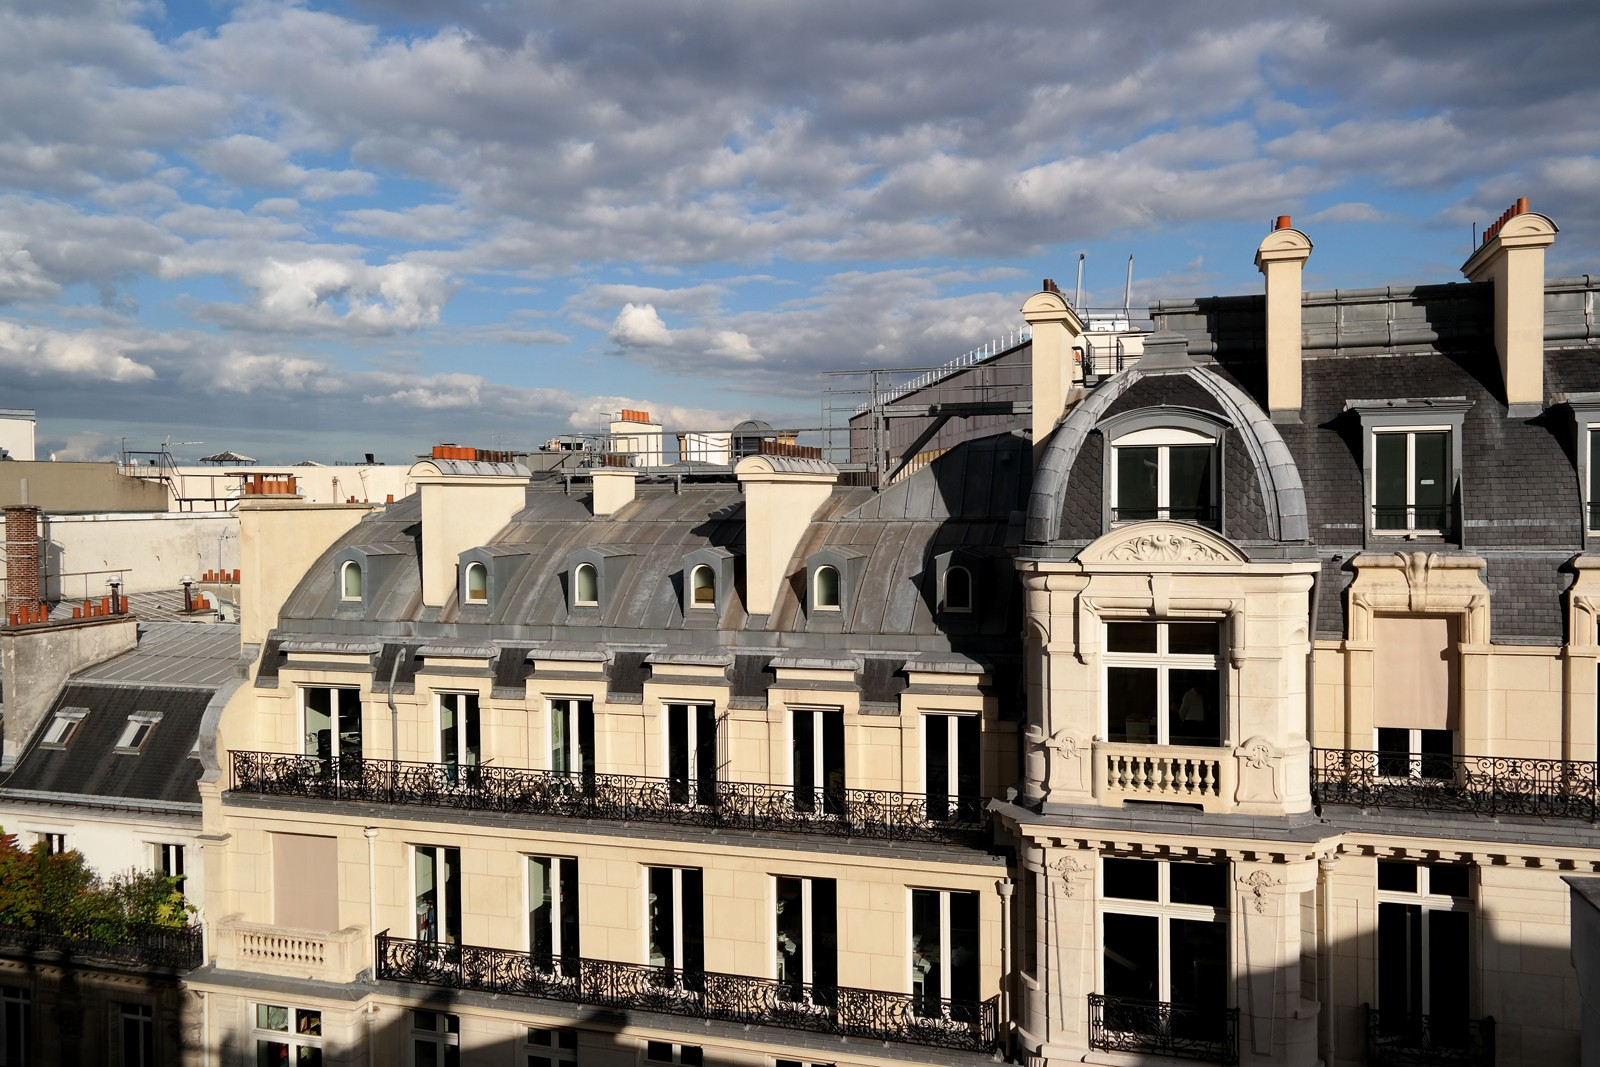 Vue-toits-de-paris-de-la-terrasse-penthouse-summer-rooftop-restaurant-le-W-hotel-warwick-champs-élysées-rue-du-berri-photo-by-united-states-of-paris-blog